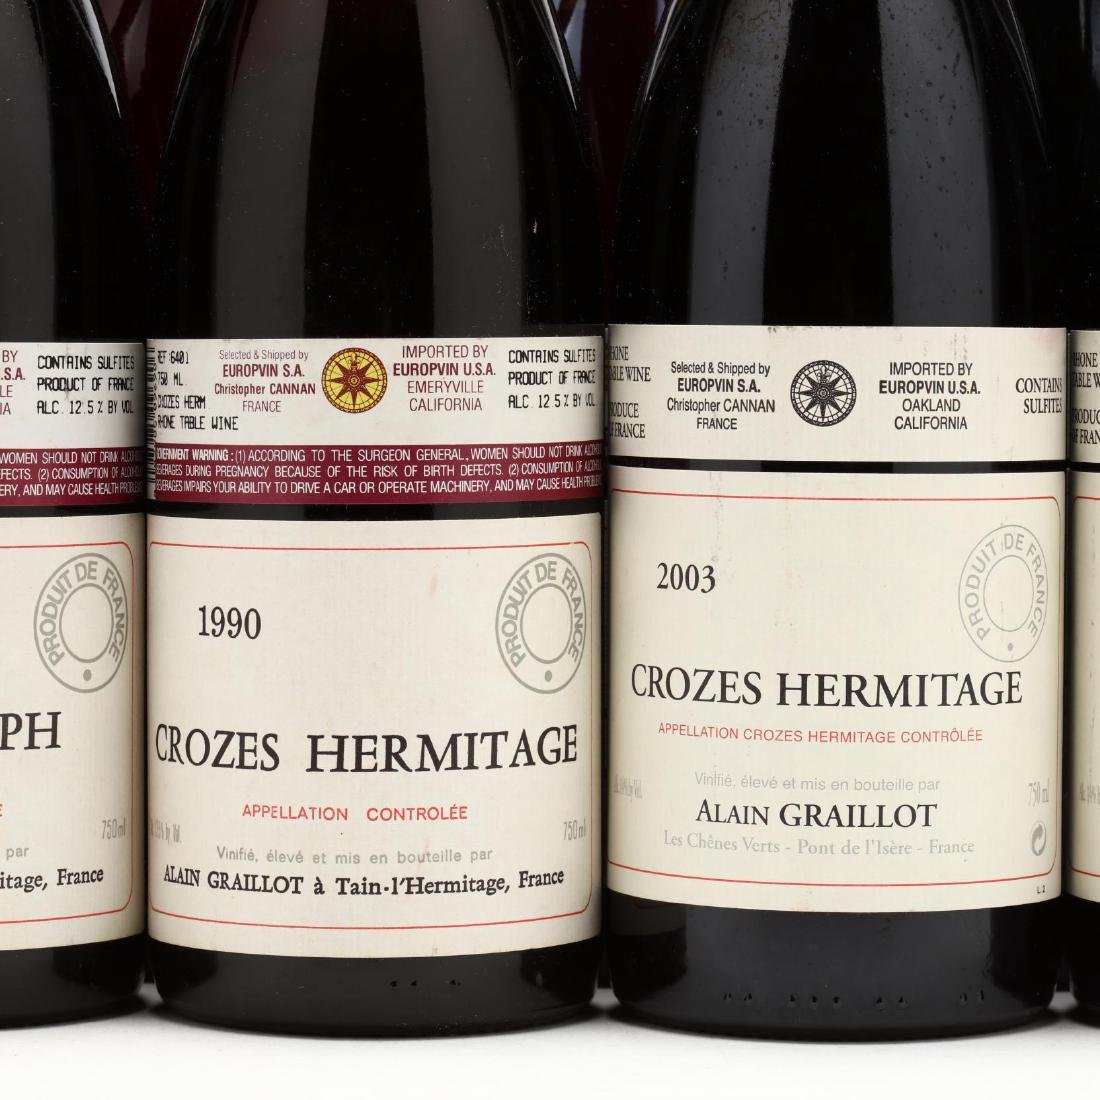 Spectacular Selection from Alain Graillot - 2